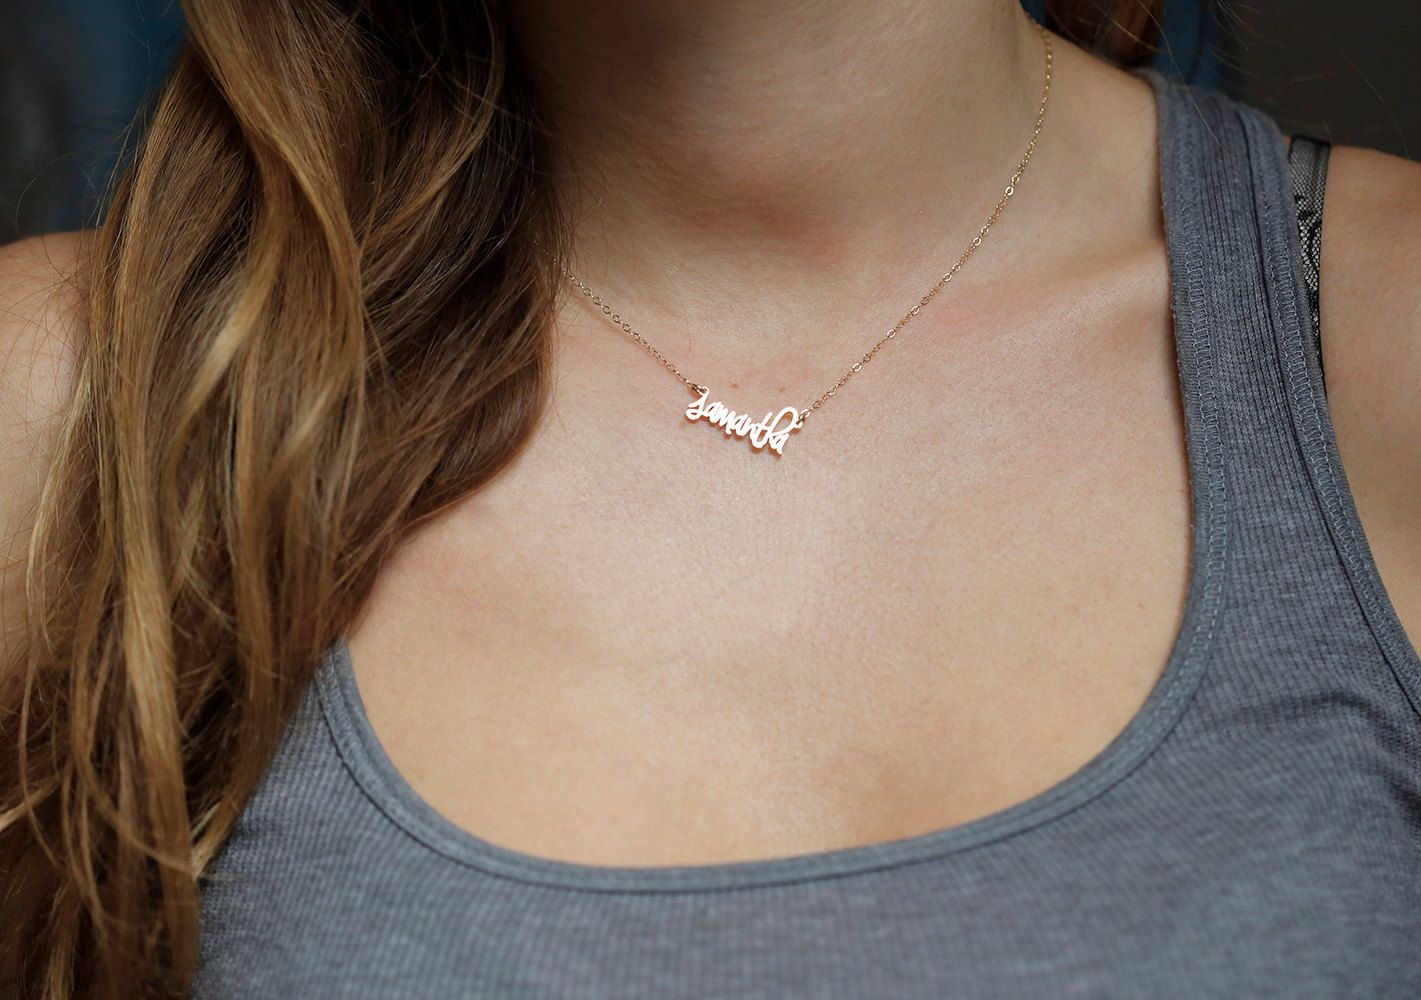 Tiny name necklace small name necklace tiny letter necklace gold